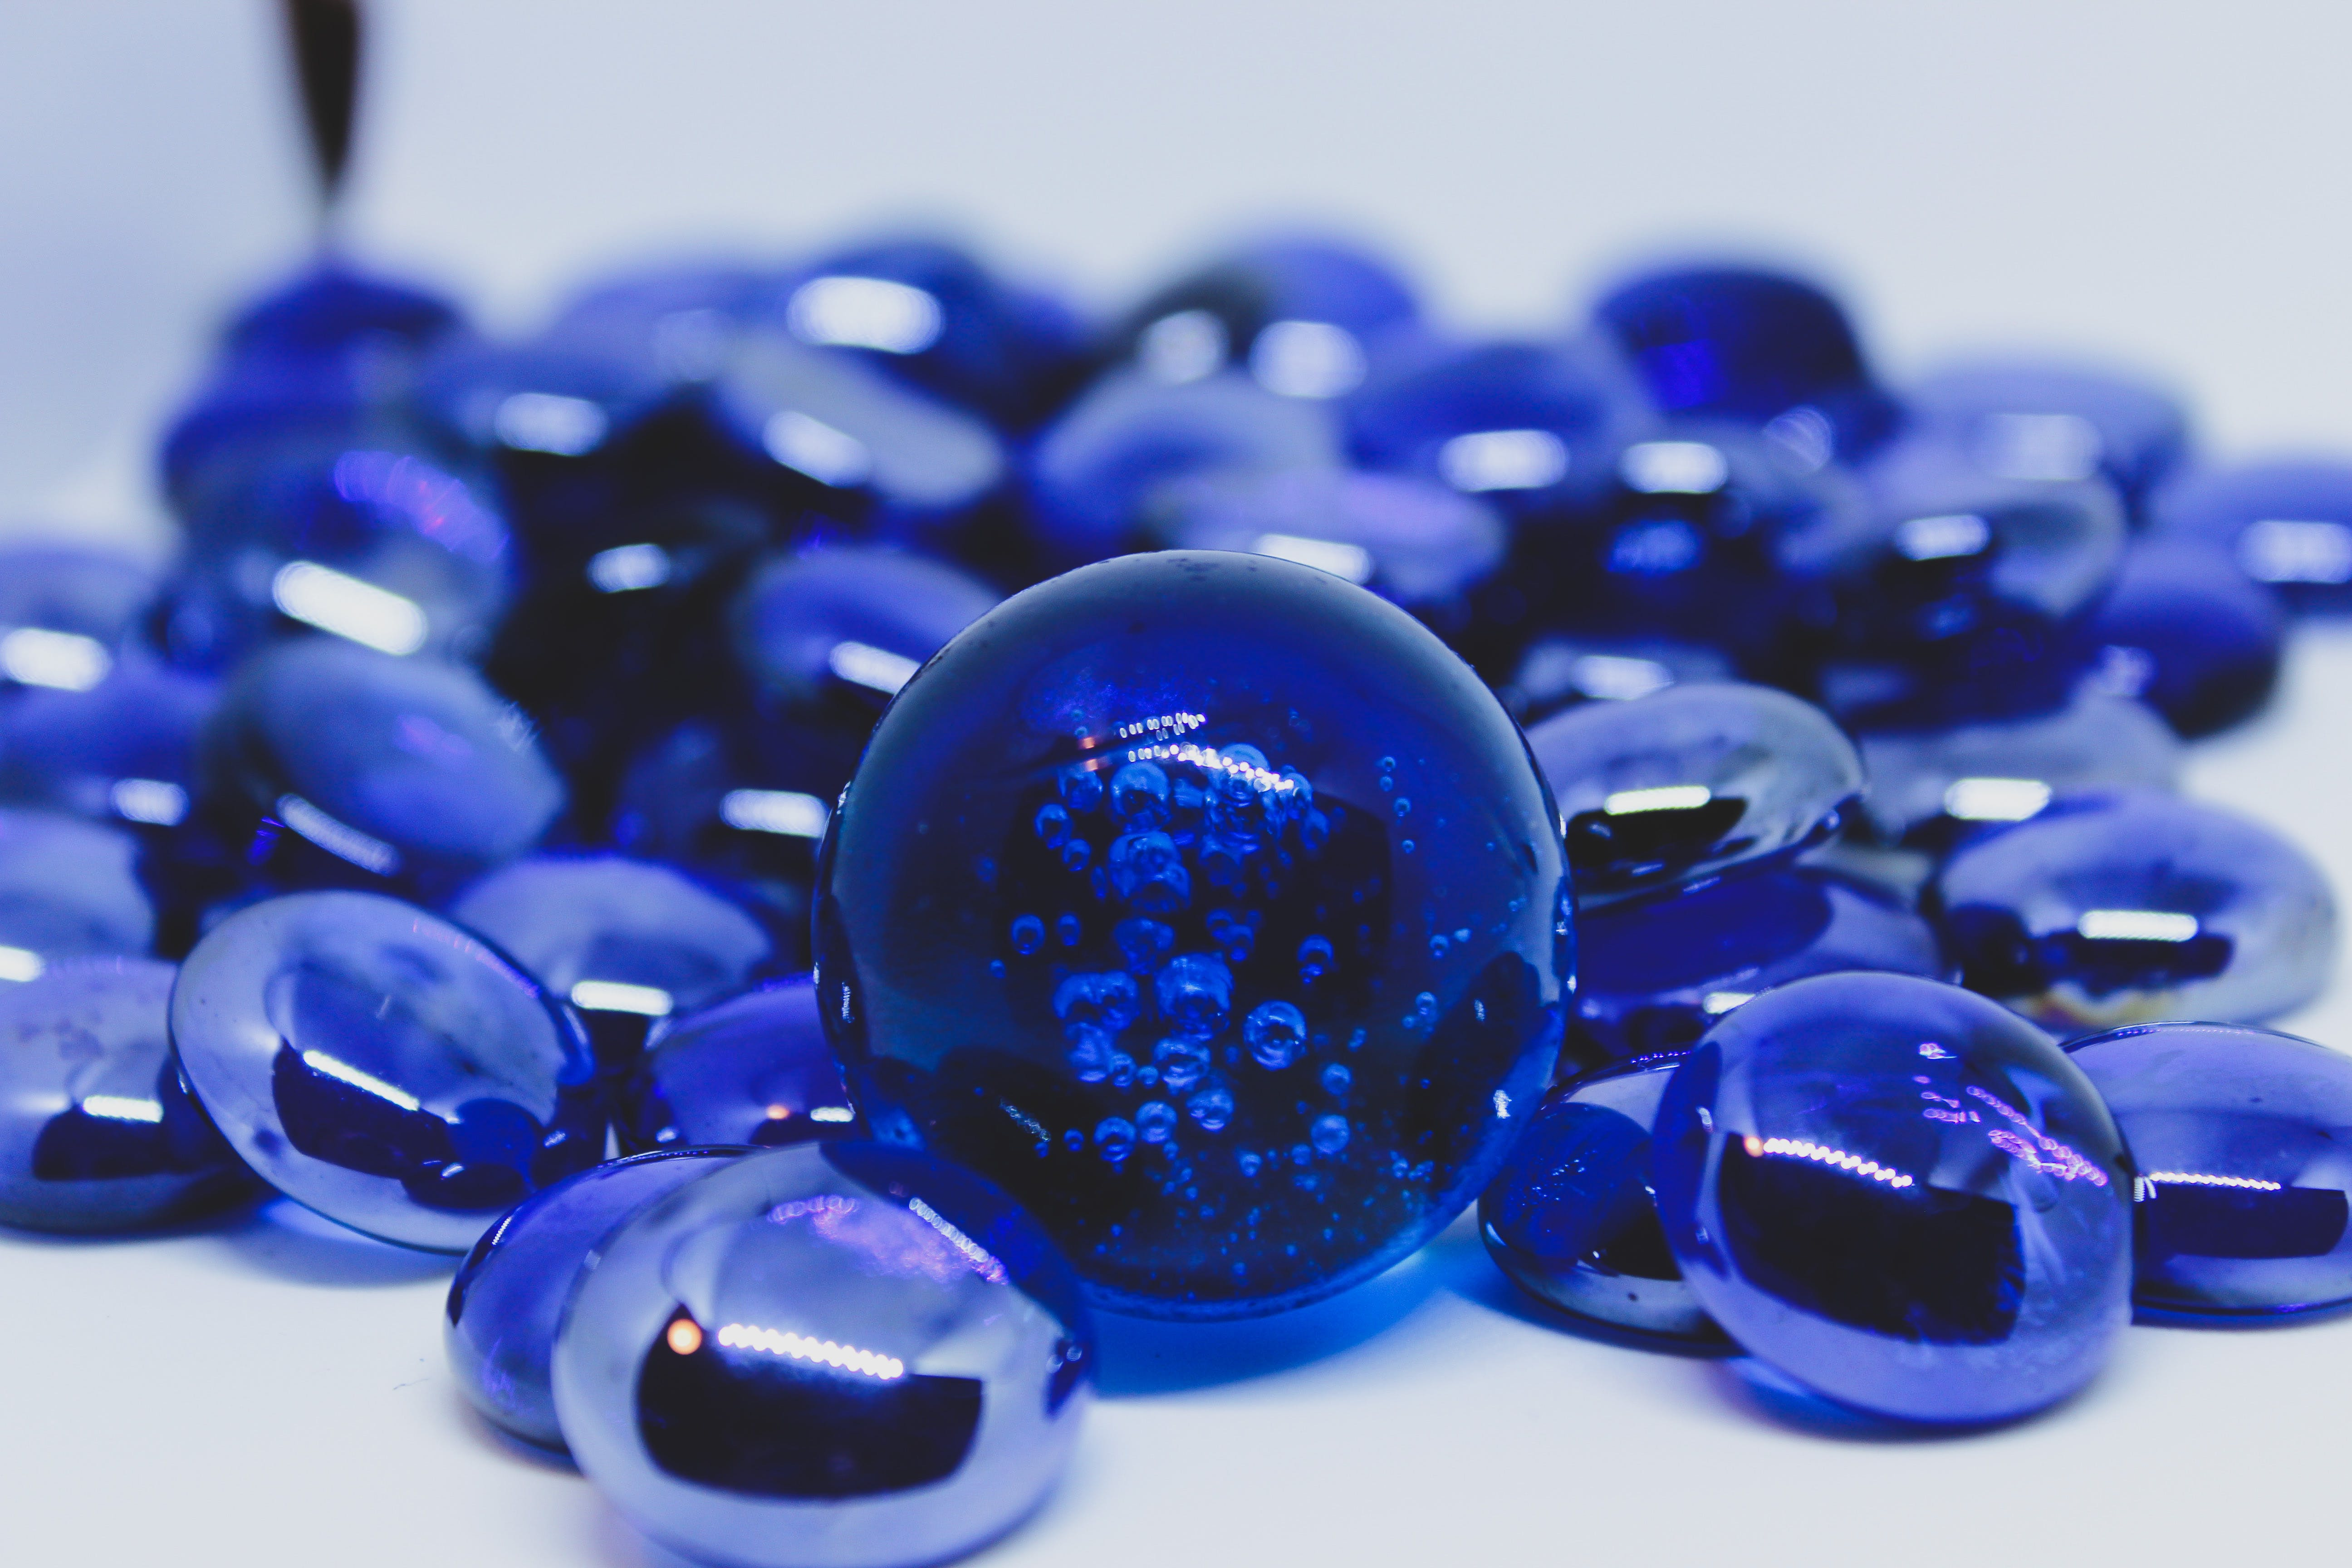 Free stock photo of #blue marbles